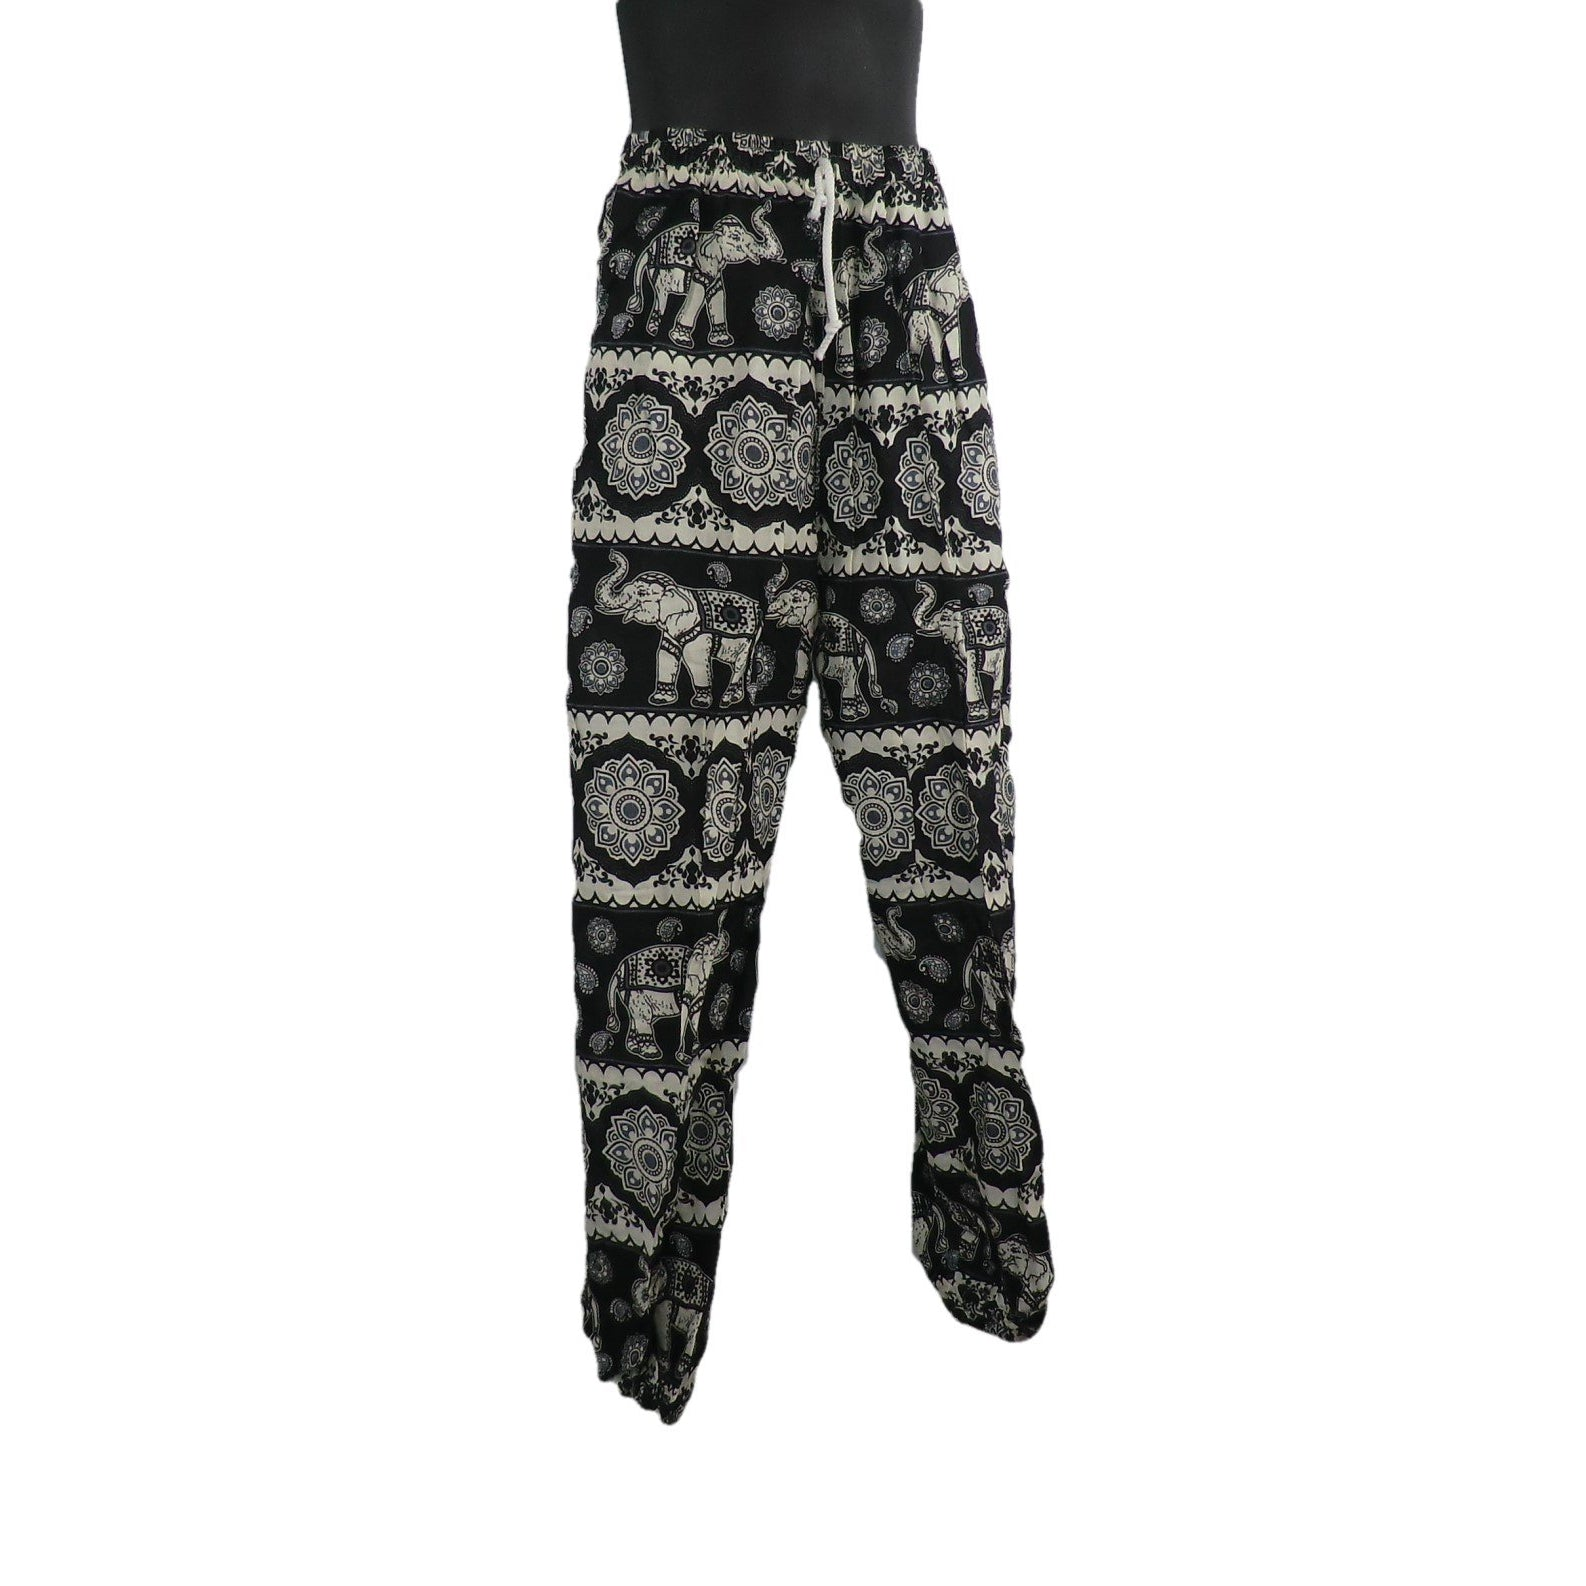 Black/ White Trousers 8 - 10yrs - Matico